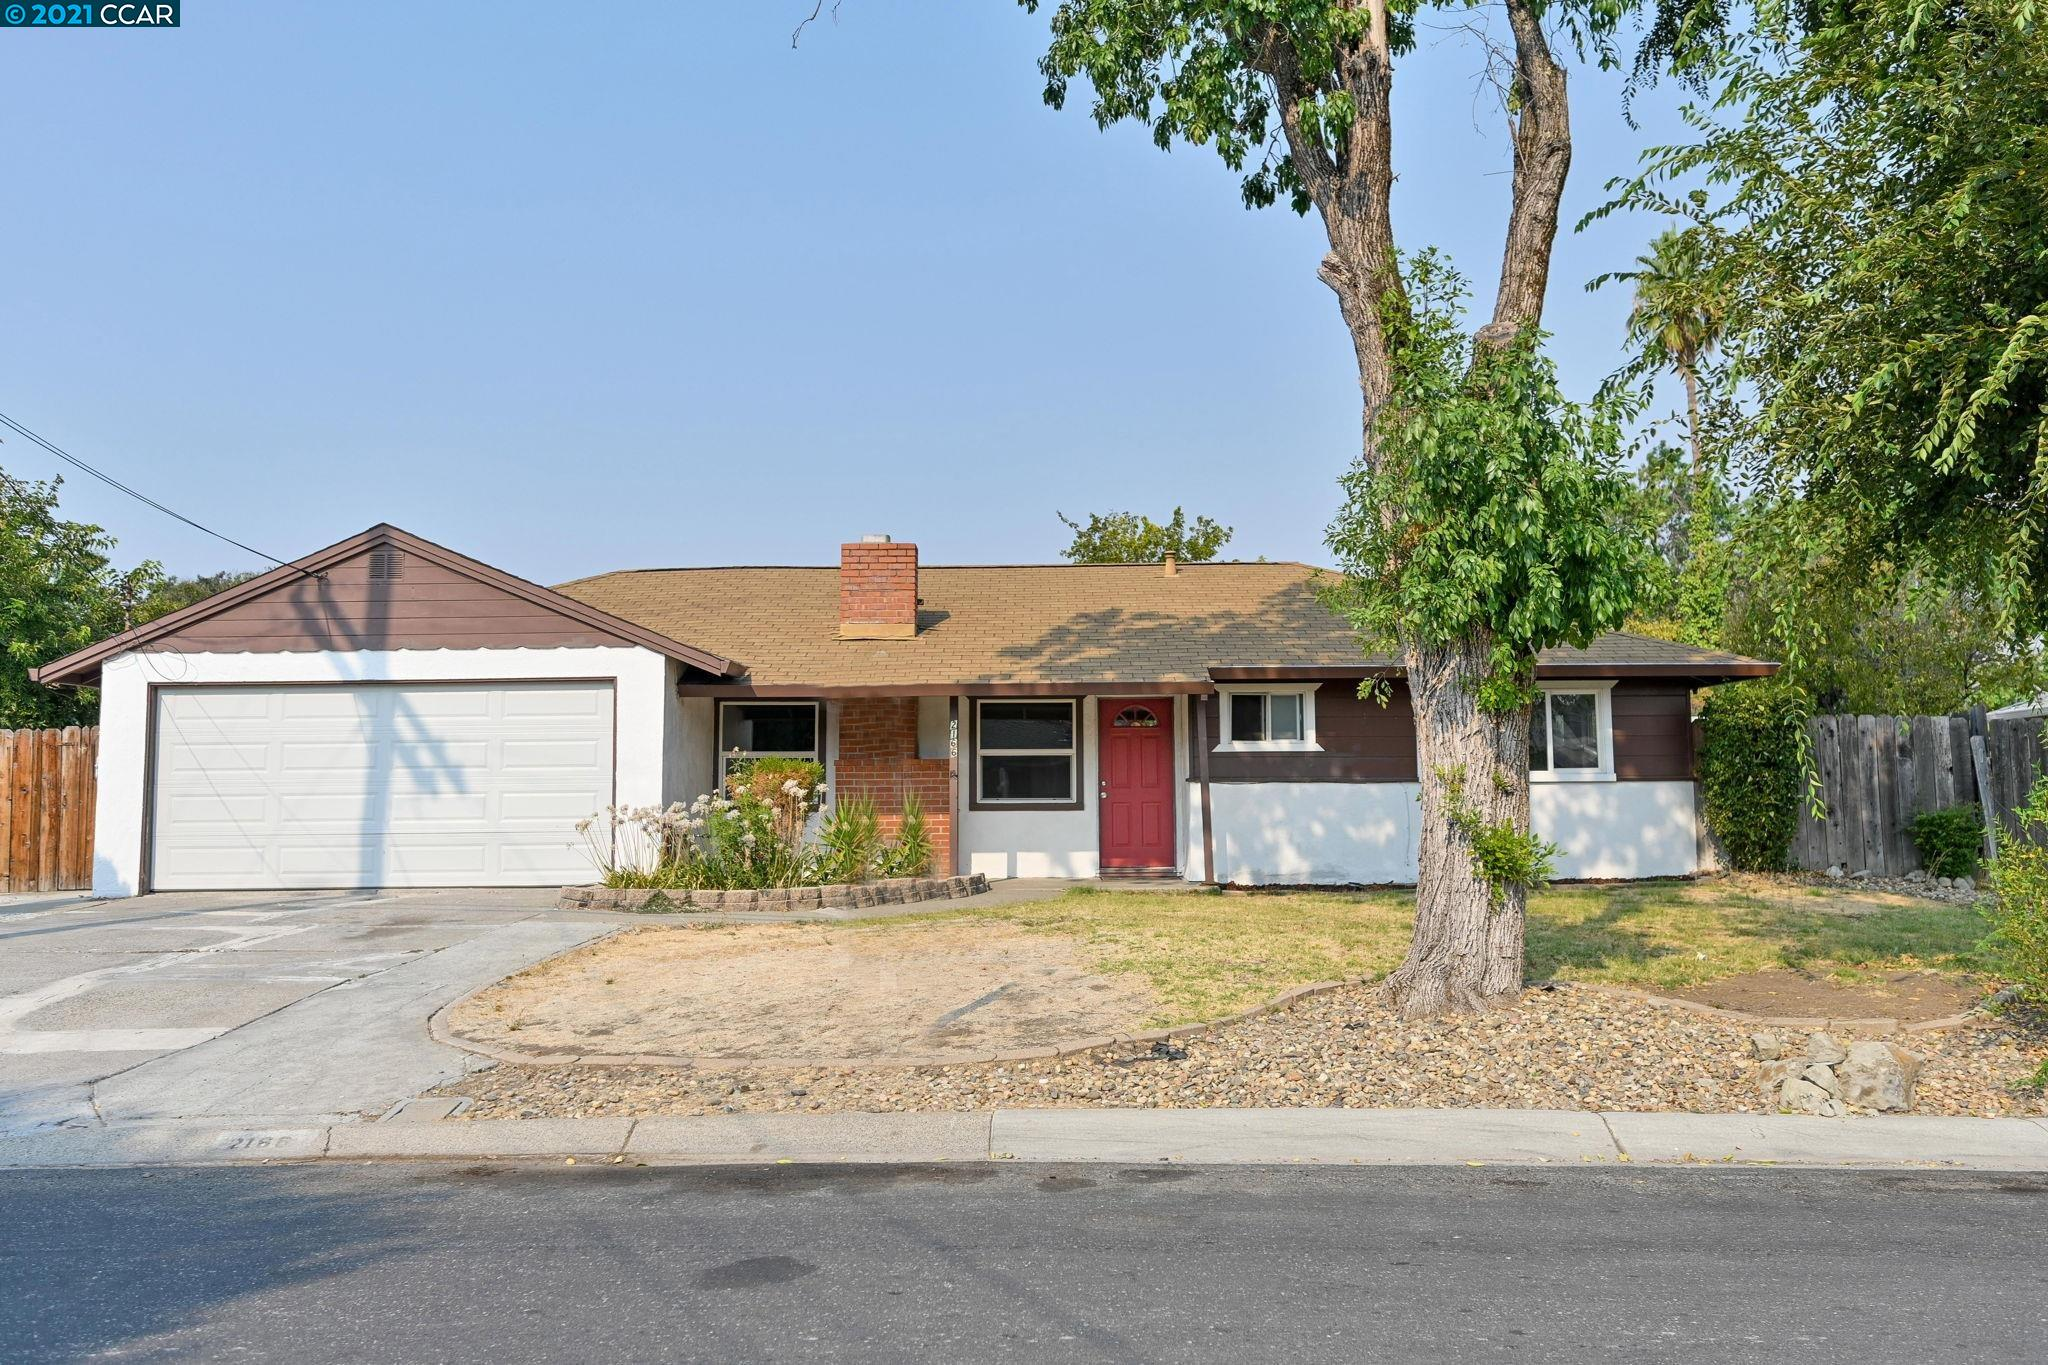 Enjoy price adjustment on this expanded California rancher on a large lot near downtown Pleasant Hill. This versatile, expanded floorpan offers a country kitchen, a Chef's dream!  Gas Whirlpool range, GE dishwasher, Oak cabinets with glass display cabinet.  Room to entertain!  Dining area and large family room. 4th bedroom can be perfect home office. 3 bedrooms include large closets, one has slider to backyard, one has mirrored closet doors, ceiling fans. Updated bathroom: tile counter, tall linen storage cabinet, shower over tub. Step out back to large covered patio seen here virtually staged; room to relax, garden, play or entertain with summer barbecues. Dual-paned windows almost throughout, central heat. Large attached garage and side-yard access for RV parking. Convenient neighborhood to walk to town, major shopping. BART and freeway access are very conveniently accessed nearby: Hgwy 680.  Open House 9/12 1:30-4pm